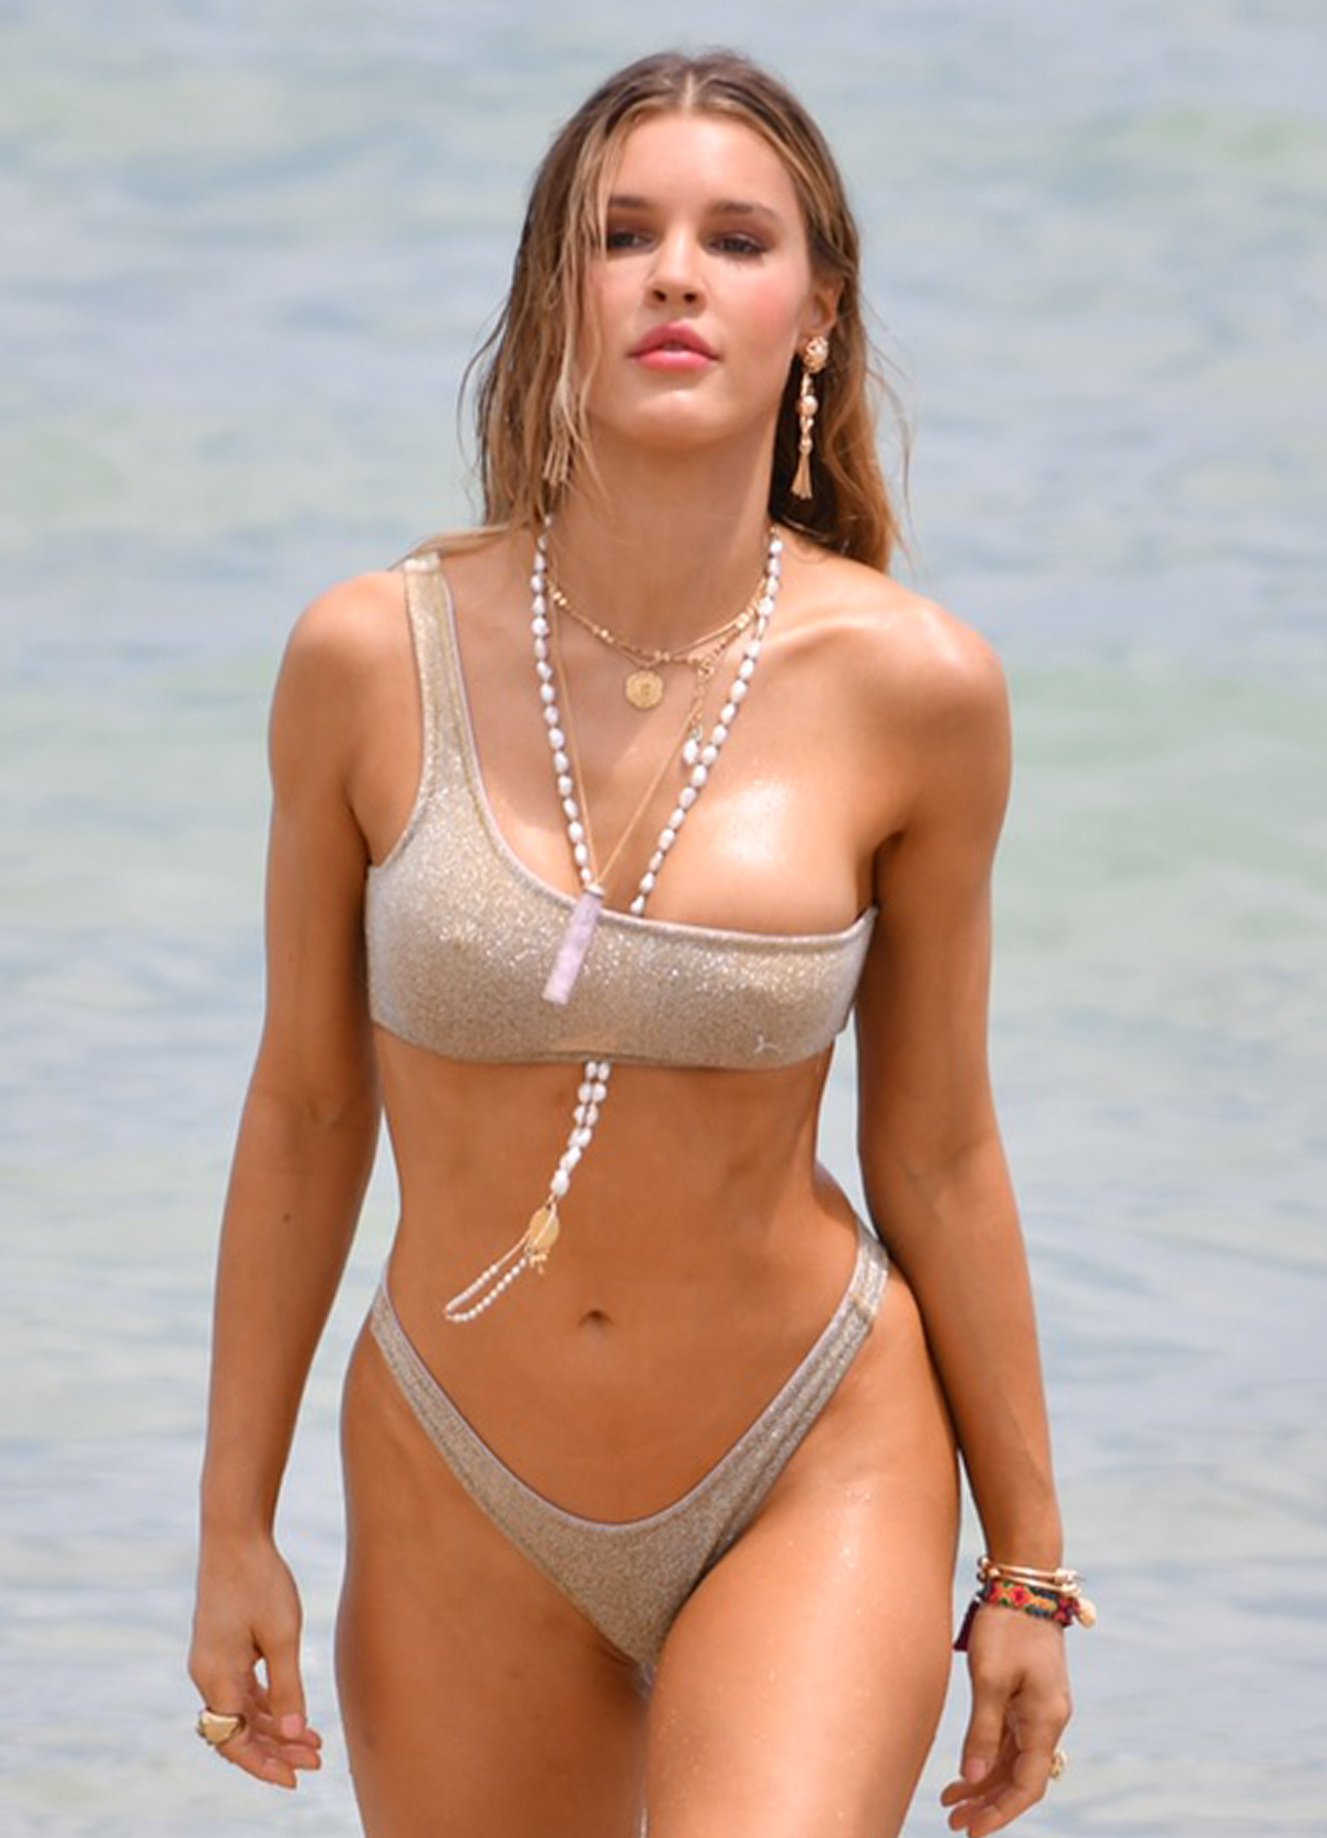 Super micro transparent sexy women v shaped string thong bikini for beach